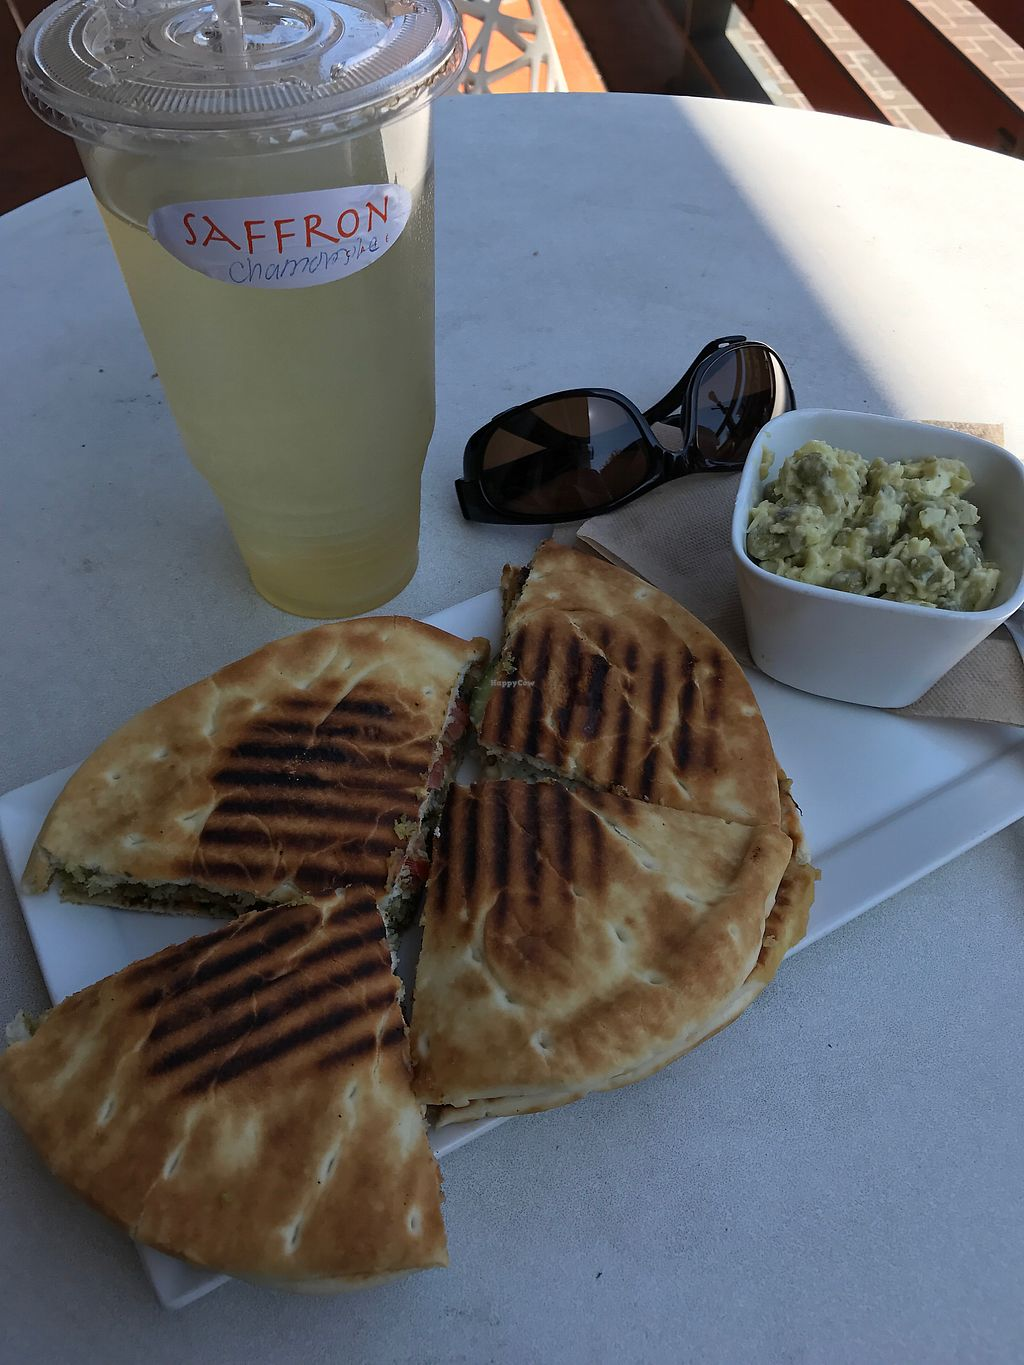 """Photo of Saffron Cafe  by <a href=""""/members/profile/LaryH"""">LaryH</a> <br/>The Mediterranean sandwich  <br/> September 1, 2017  - <a href='/contact/abuse/image/93023/299546'>Report</a>"""